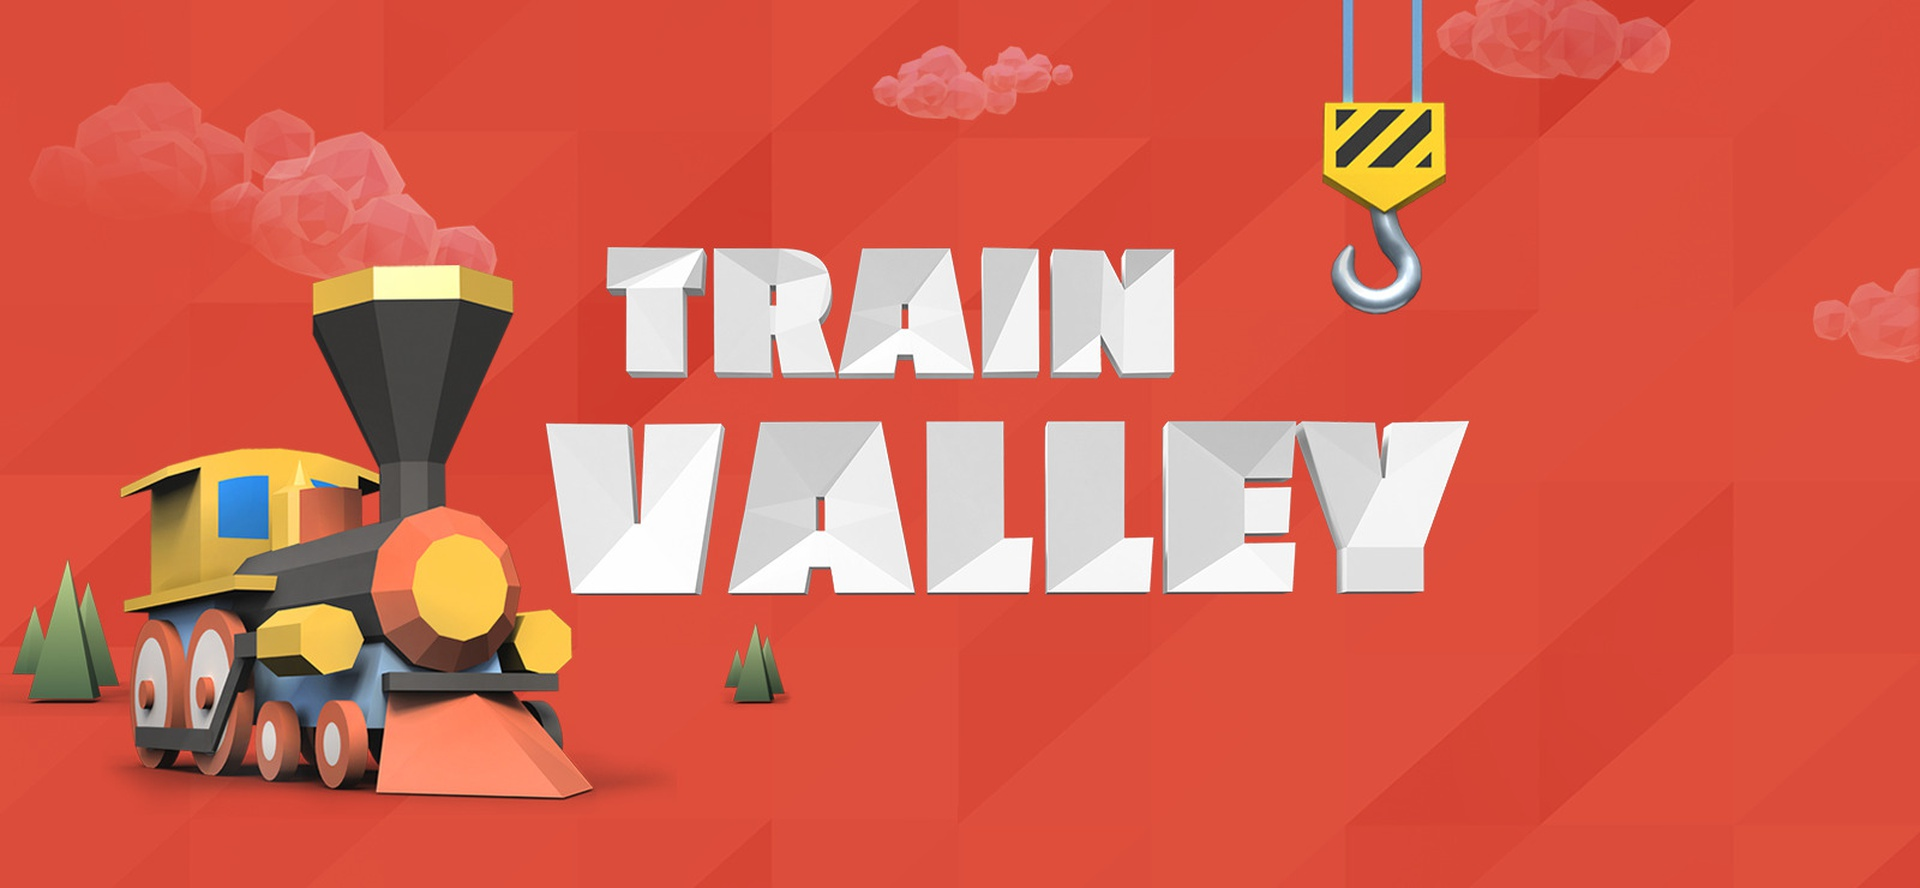 Train Valley Video